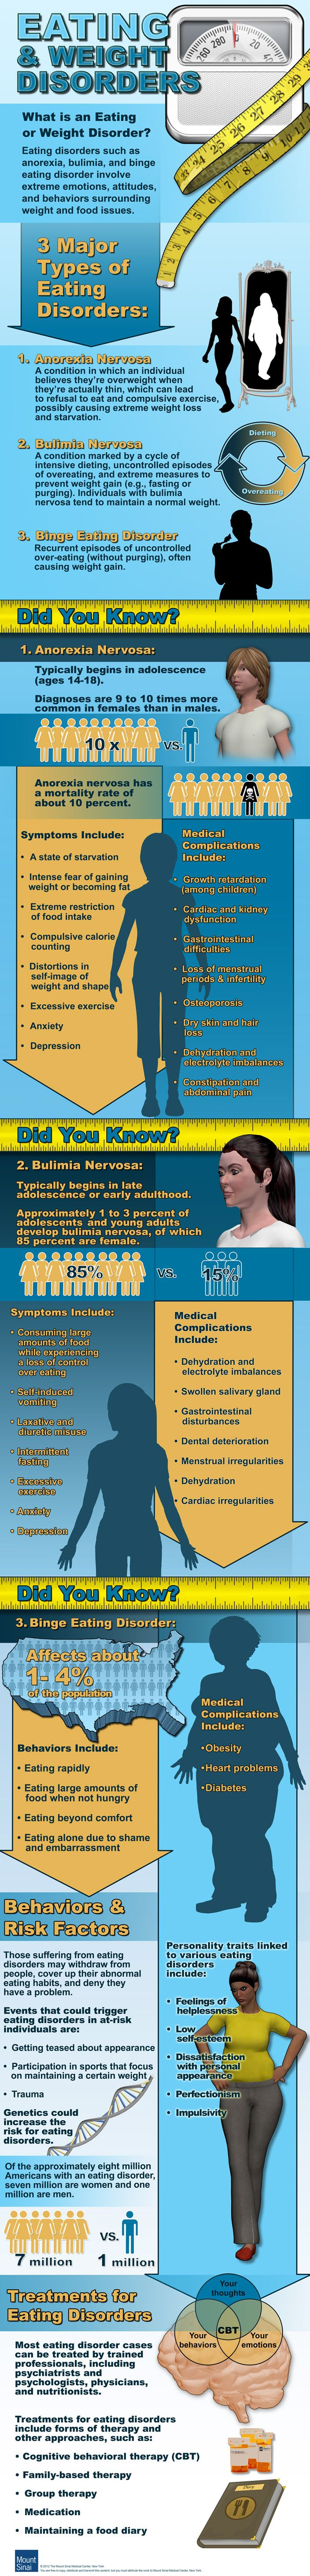 anorexia nervosa treatment options Anorexia nervosa is a serious and potential life threatening disorder that usually begins during adolescence compulsive disorder and bipolar disorder are common psychiatric conditions complicating the treatment for patients with anorexia current treatment options.